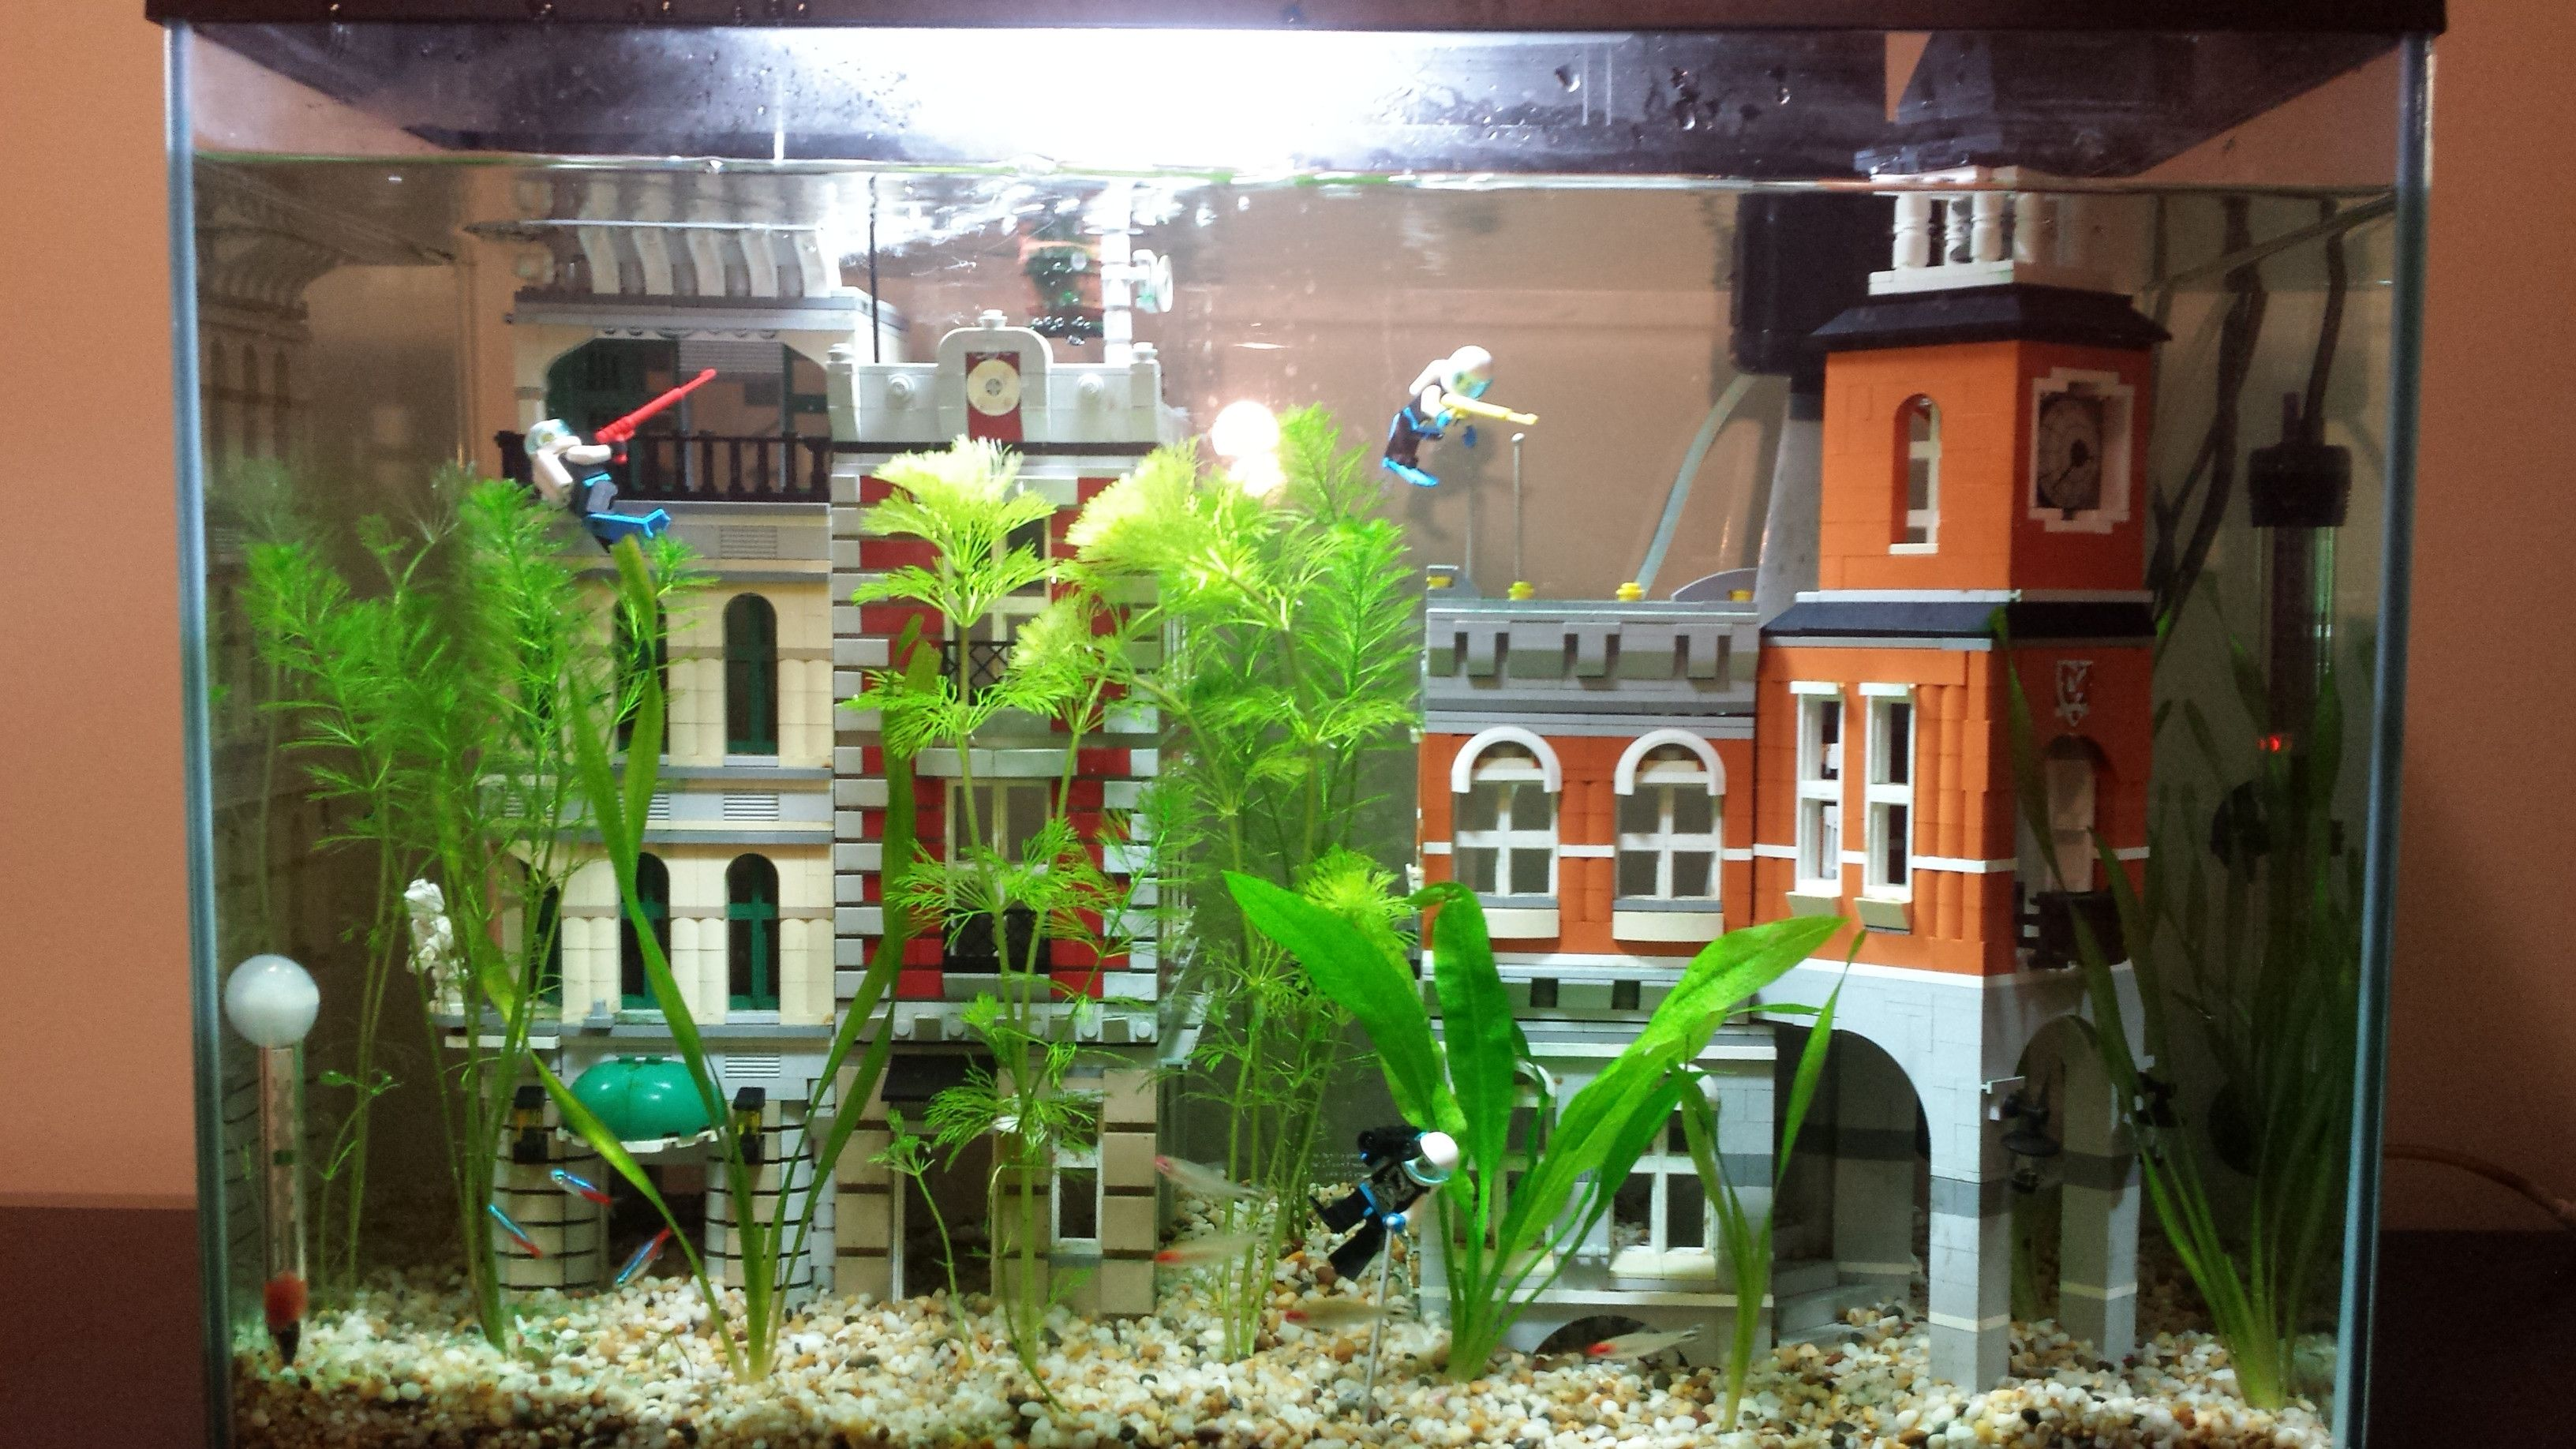 Fish aquarium business - Lego Fish Tank A Little Worried Can Fish Get Scratched And Hurt Themselves